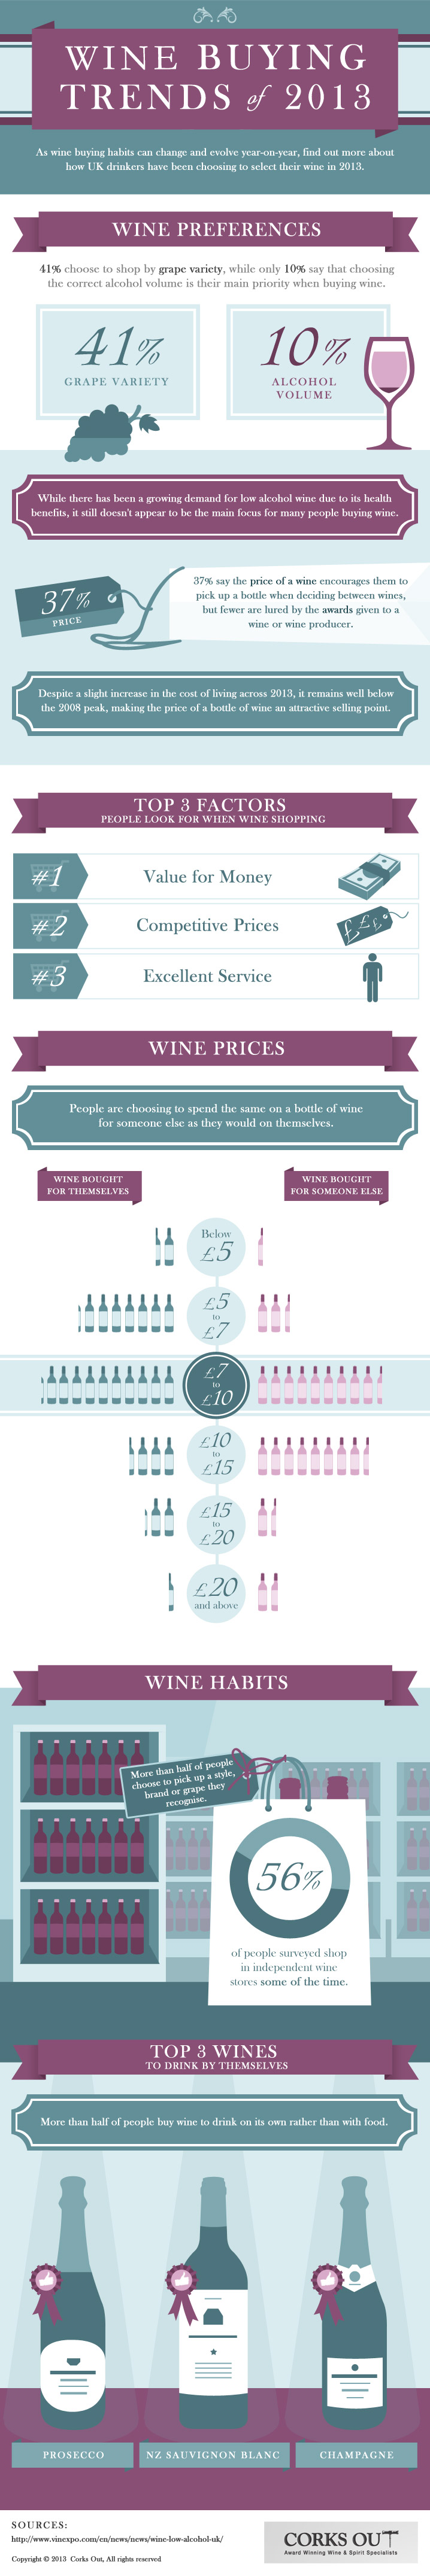 Wine Buying Trends